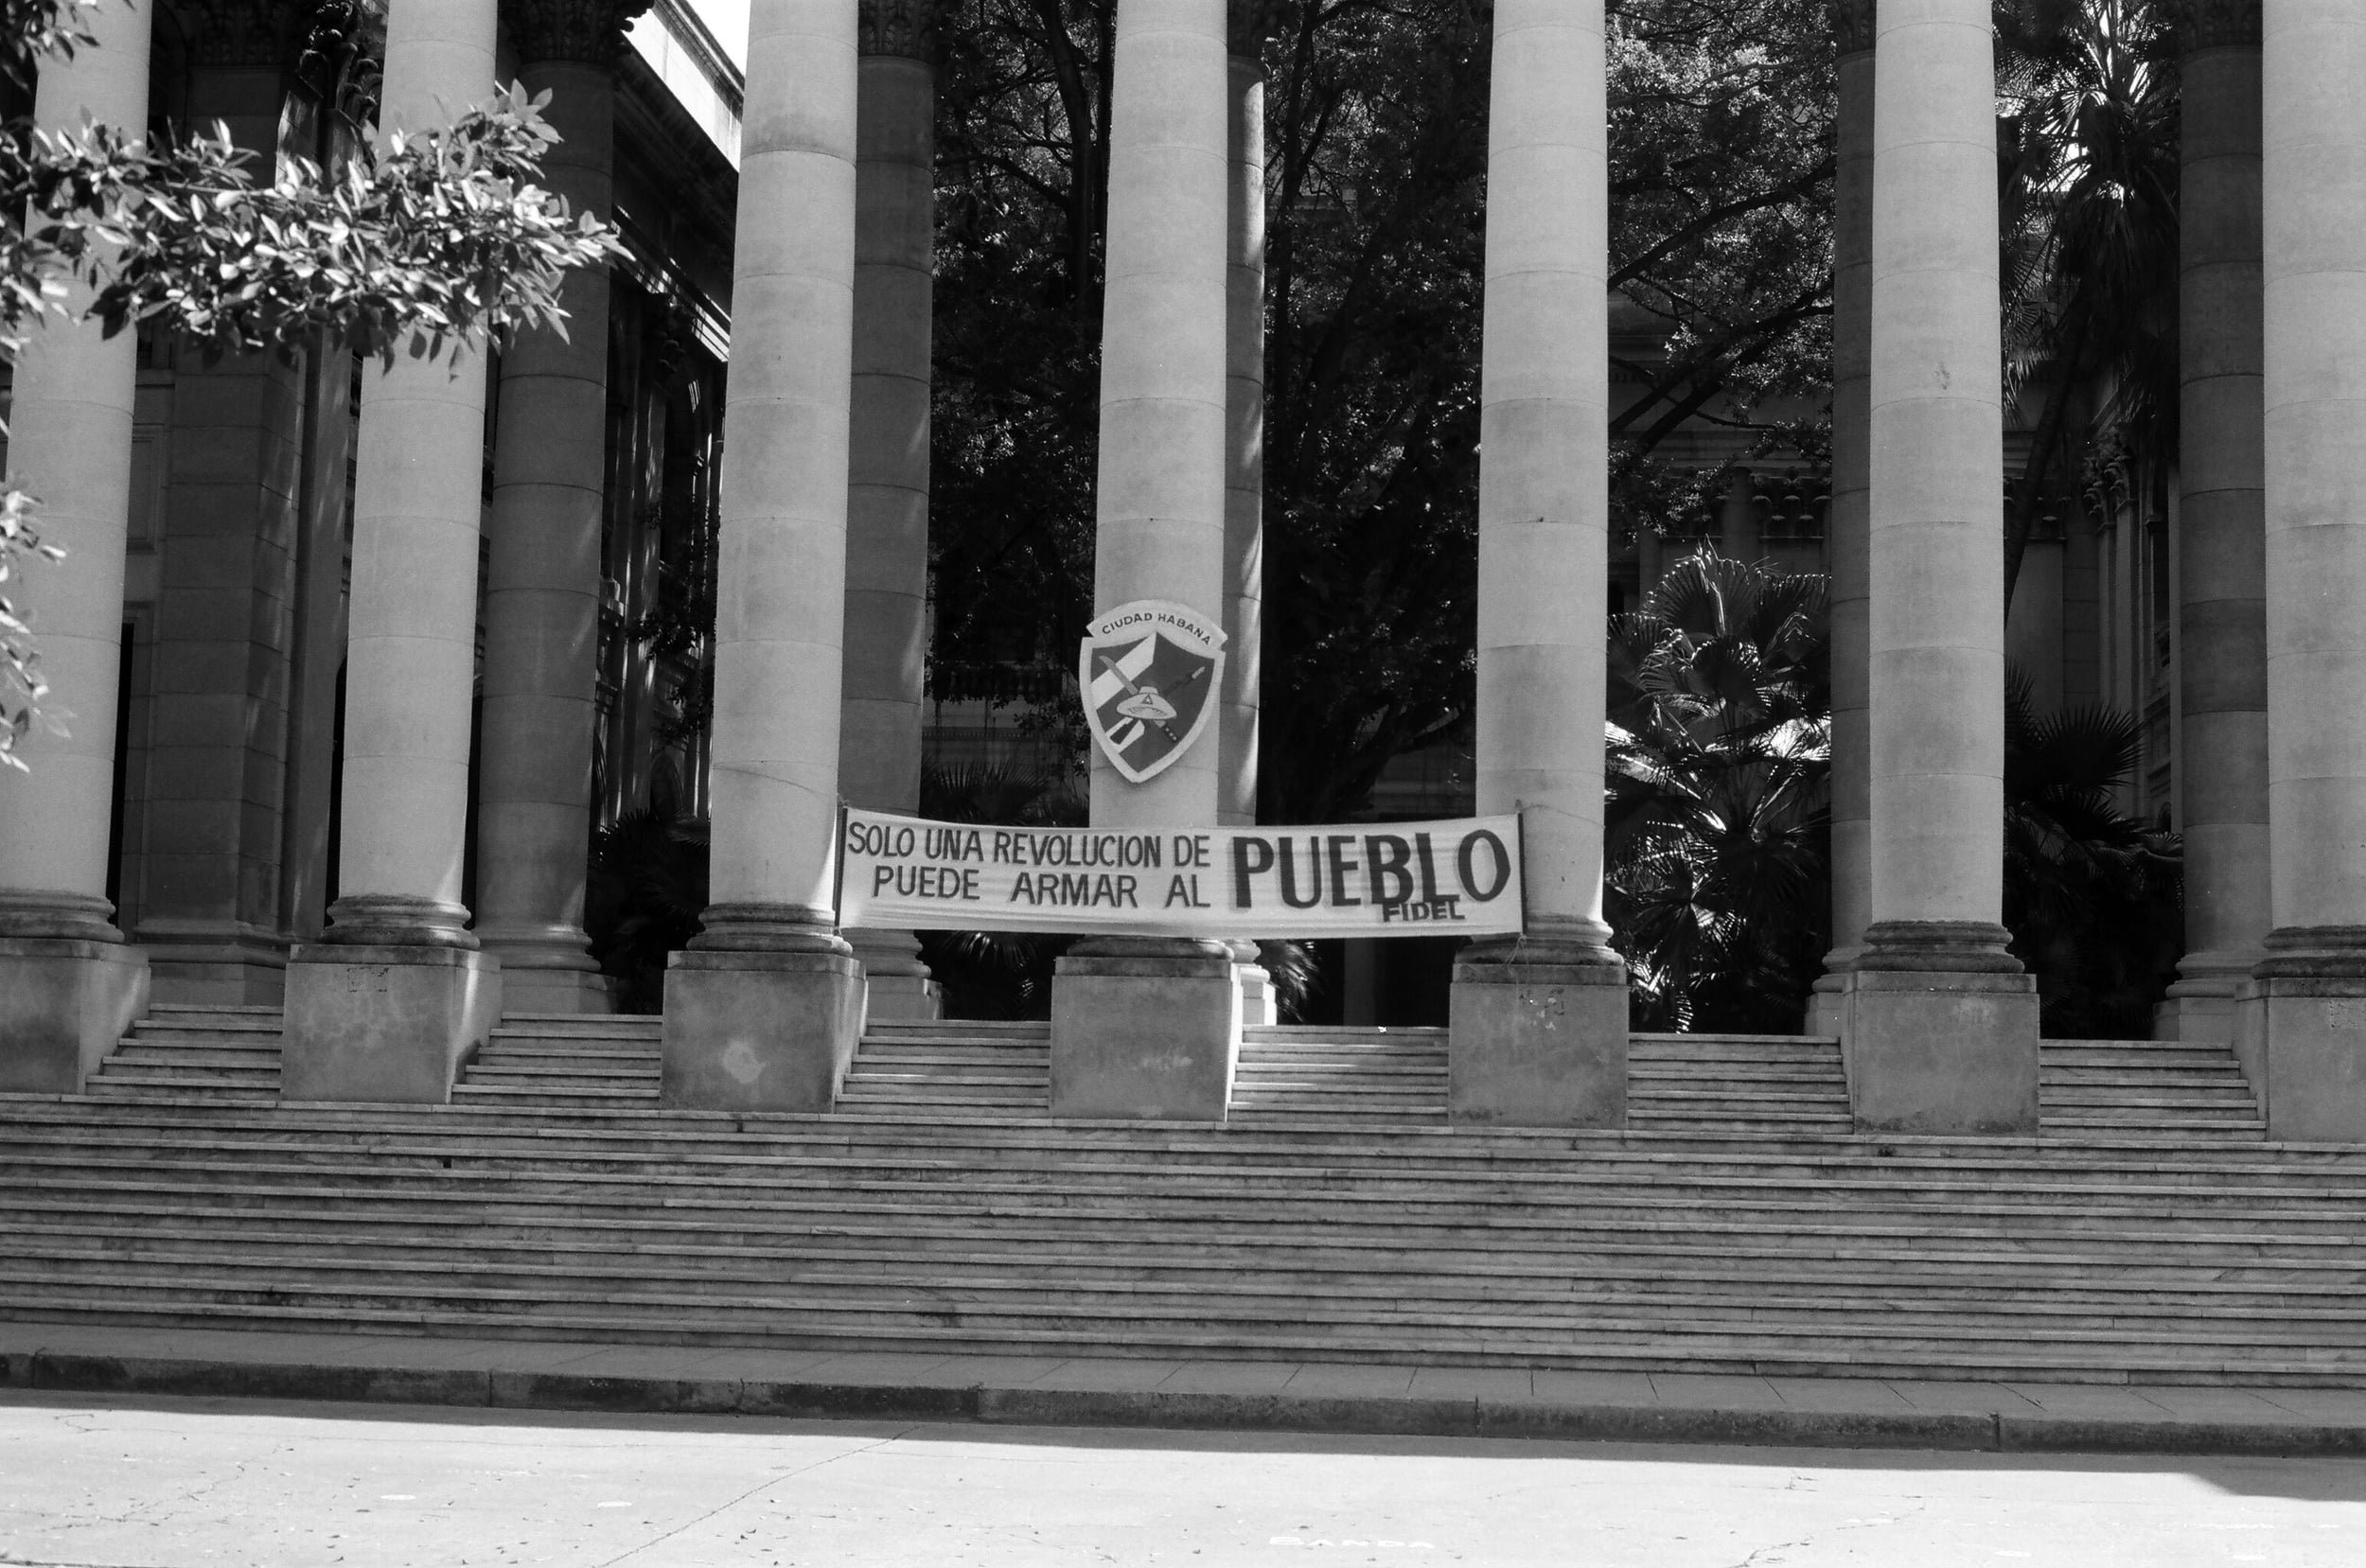 """Banner at the University of Habana, """"Only the revolution of a village can arm a village."""""""